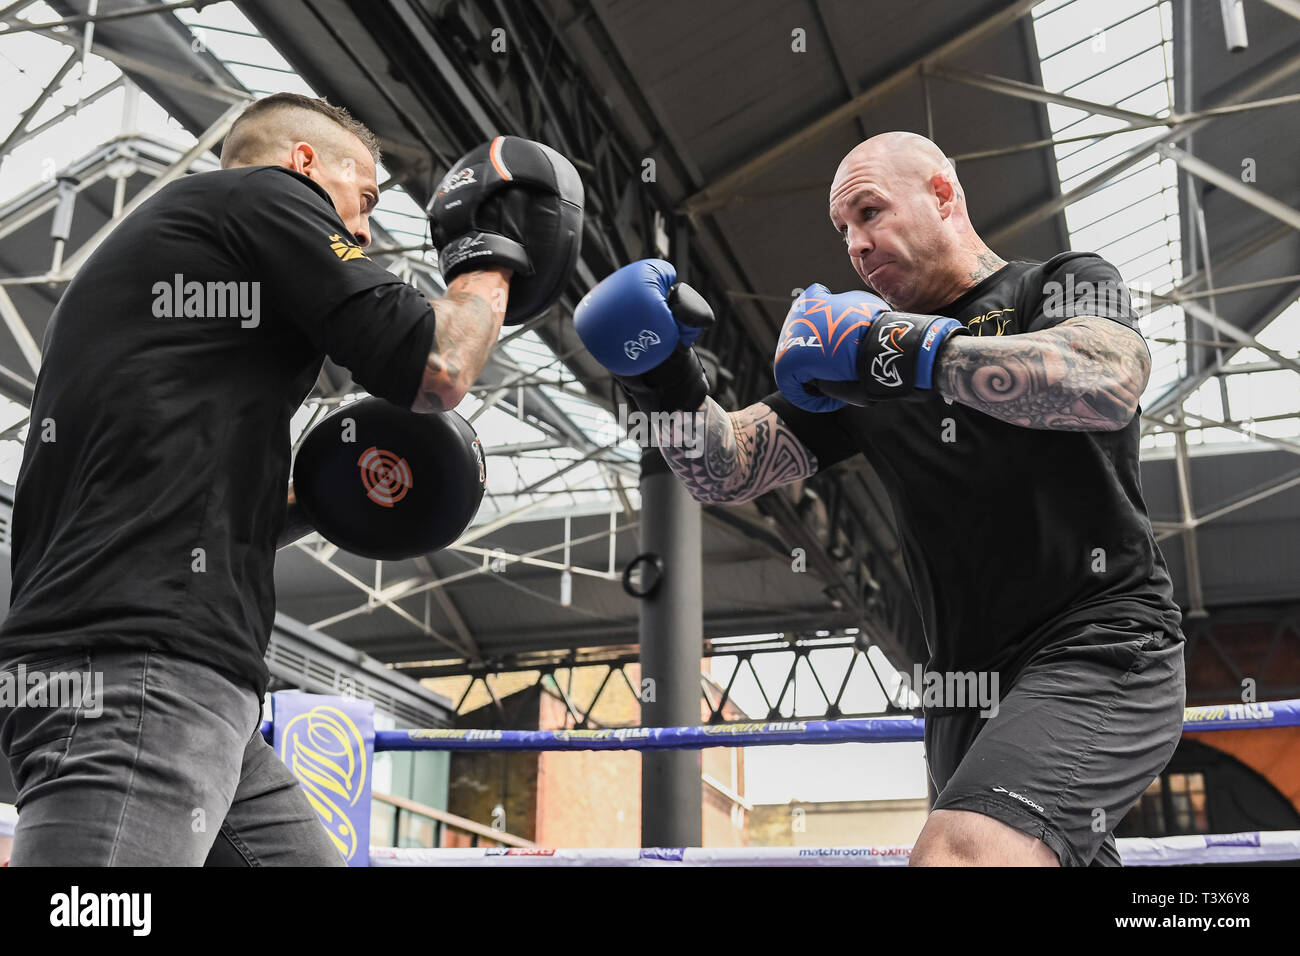 London, UK. 12th Apr, 2019. Australia's former WBA Heavyweight World Champion Lucas Browne with his manager during Allen-Browne Public Workout at Old Spitalfields Market on Friday, 12 April 2019. London England. (Editorial use only, license required for commercial use. No use in betting, games or a single club/league/player publications.) Credit: Taka G Wu/Alamy Live News - Stock Image